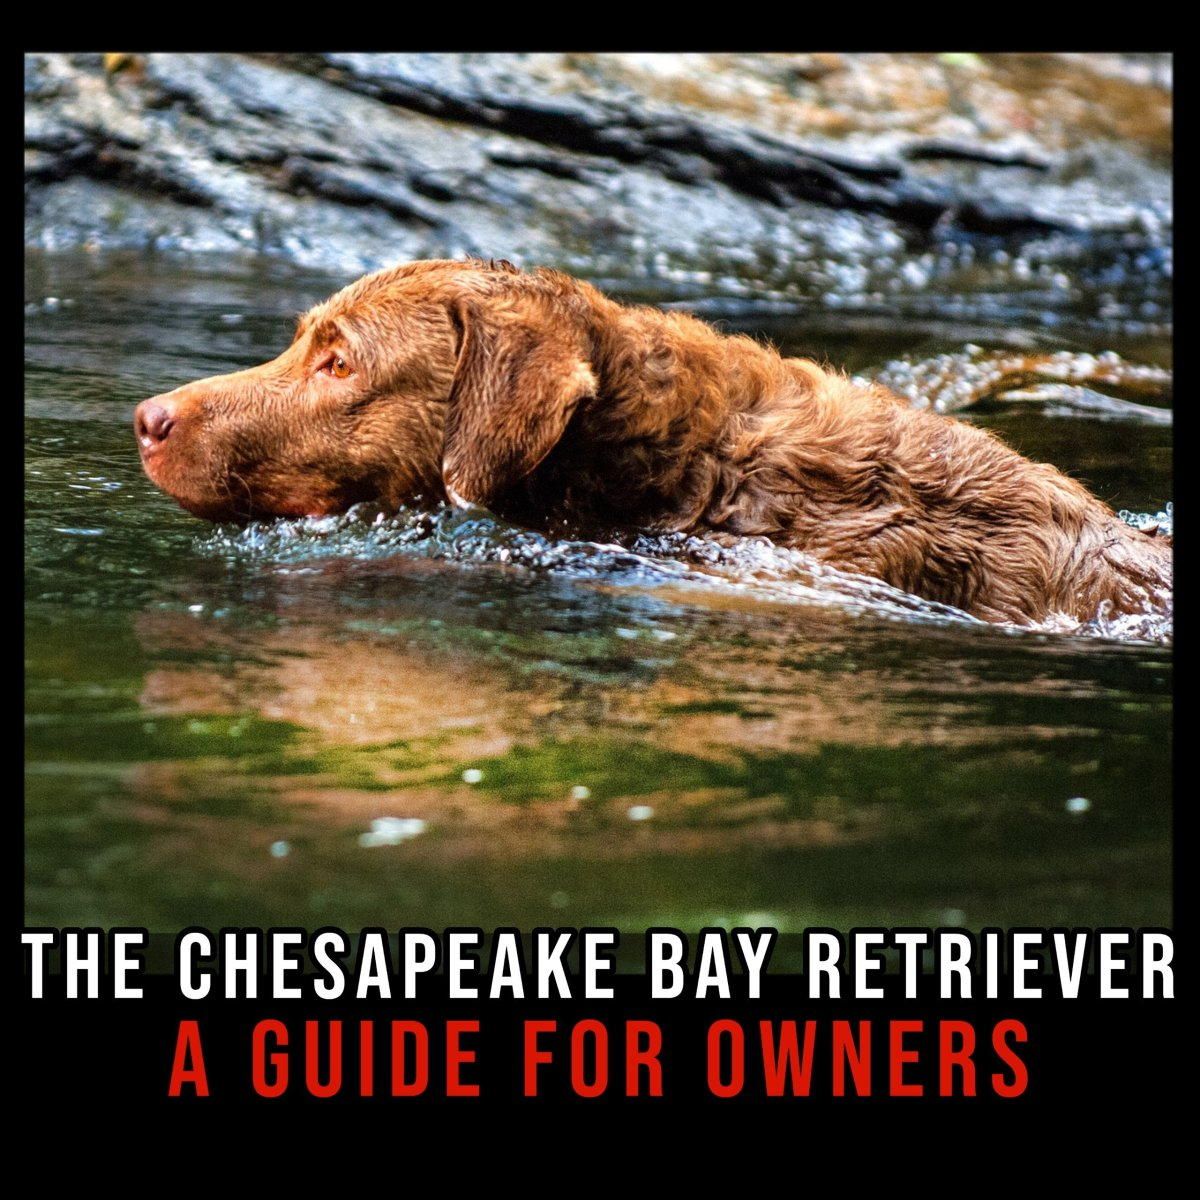 The Chesapeake Bay Retriever: A Guide for Owners